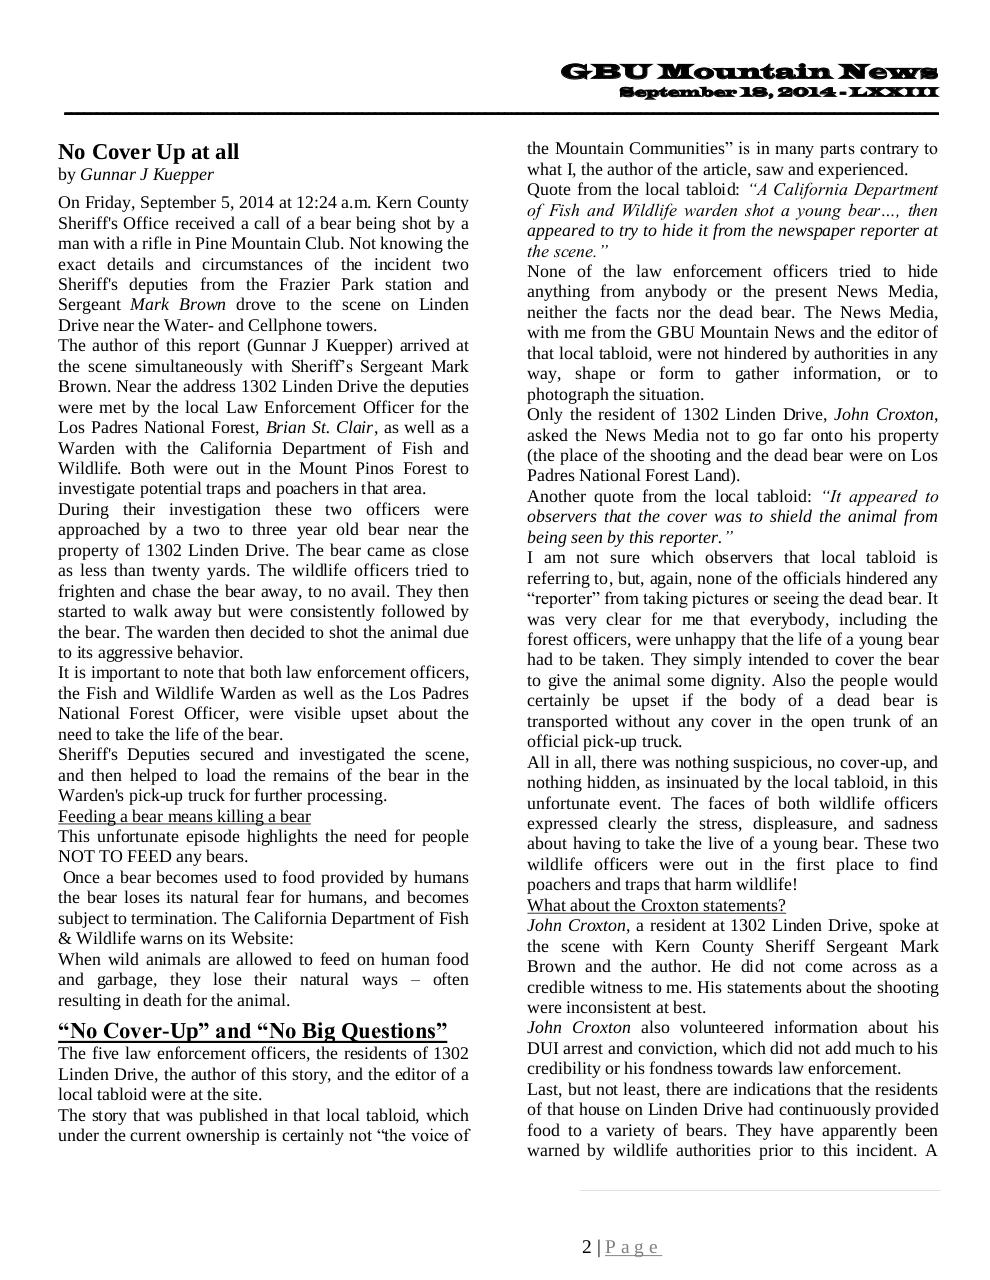 GBU Mountain News LXXIII - September 18, 2014.pdf - page 2/45